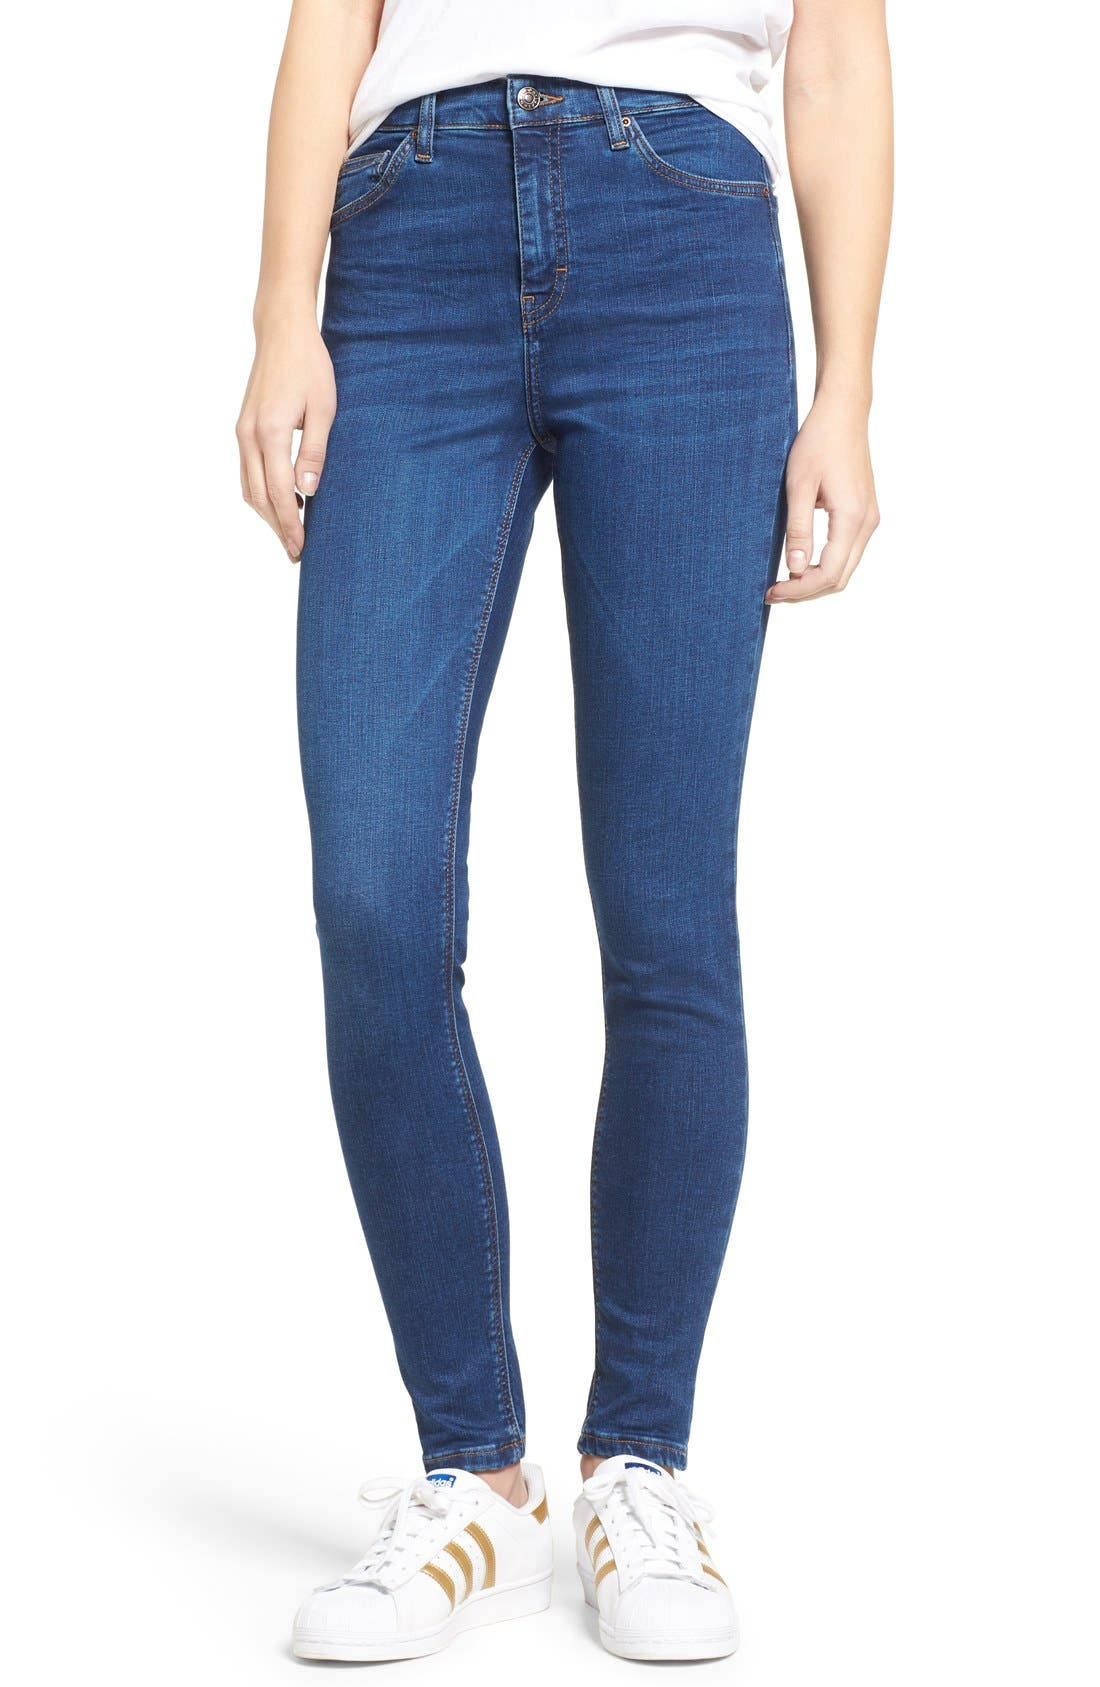 Alternate Image 1 Selected - Topshop Jamie High Waist Ankle Skinny Jeans